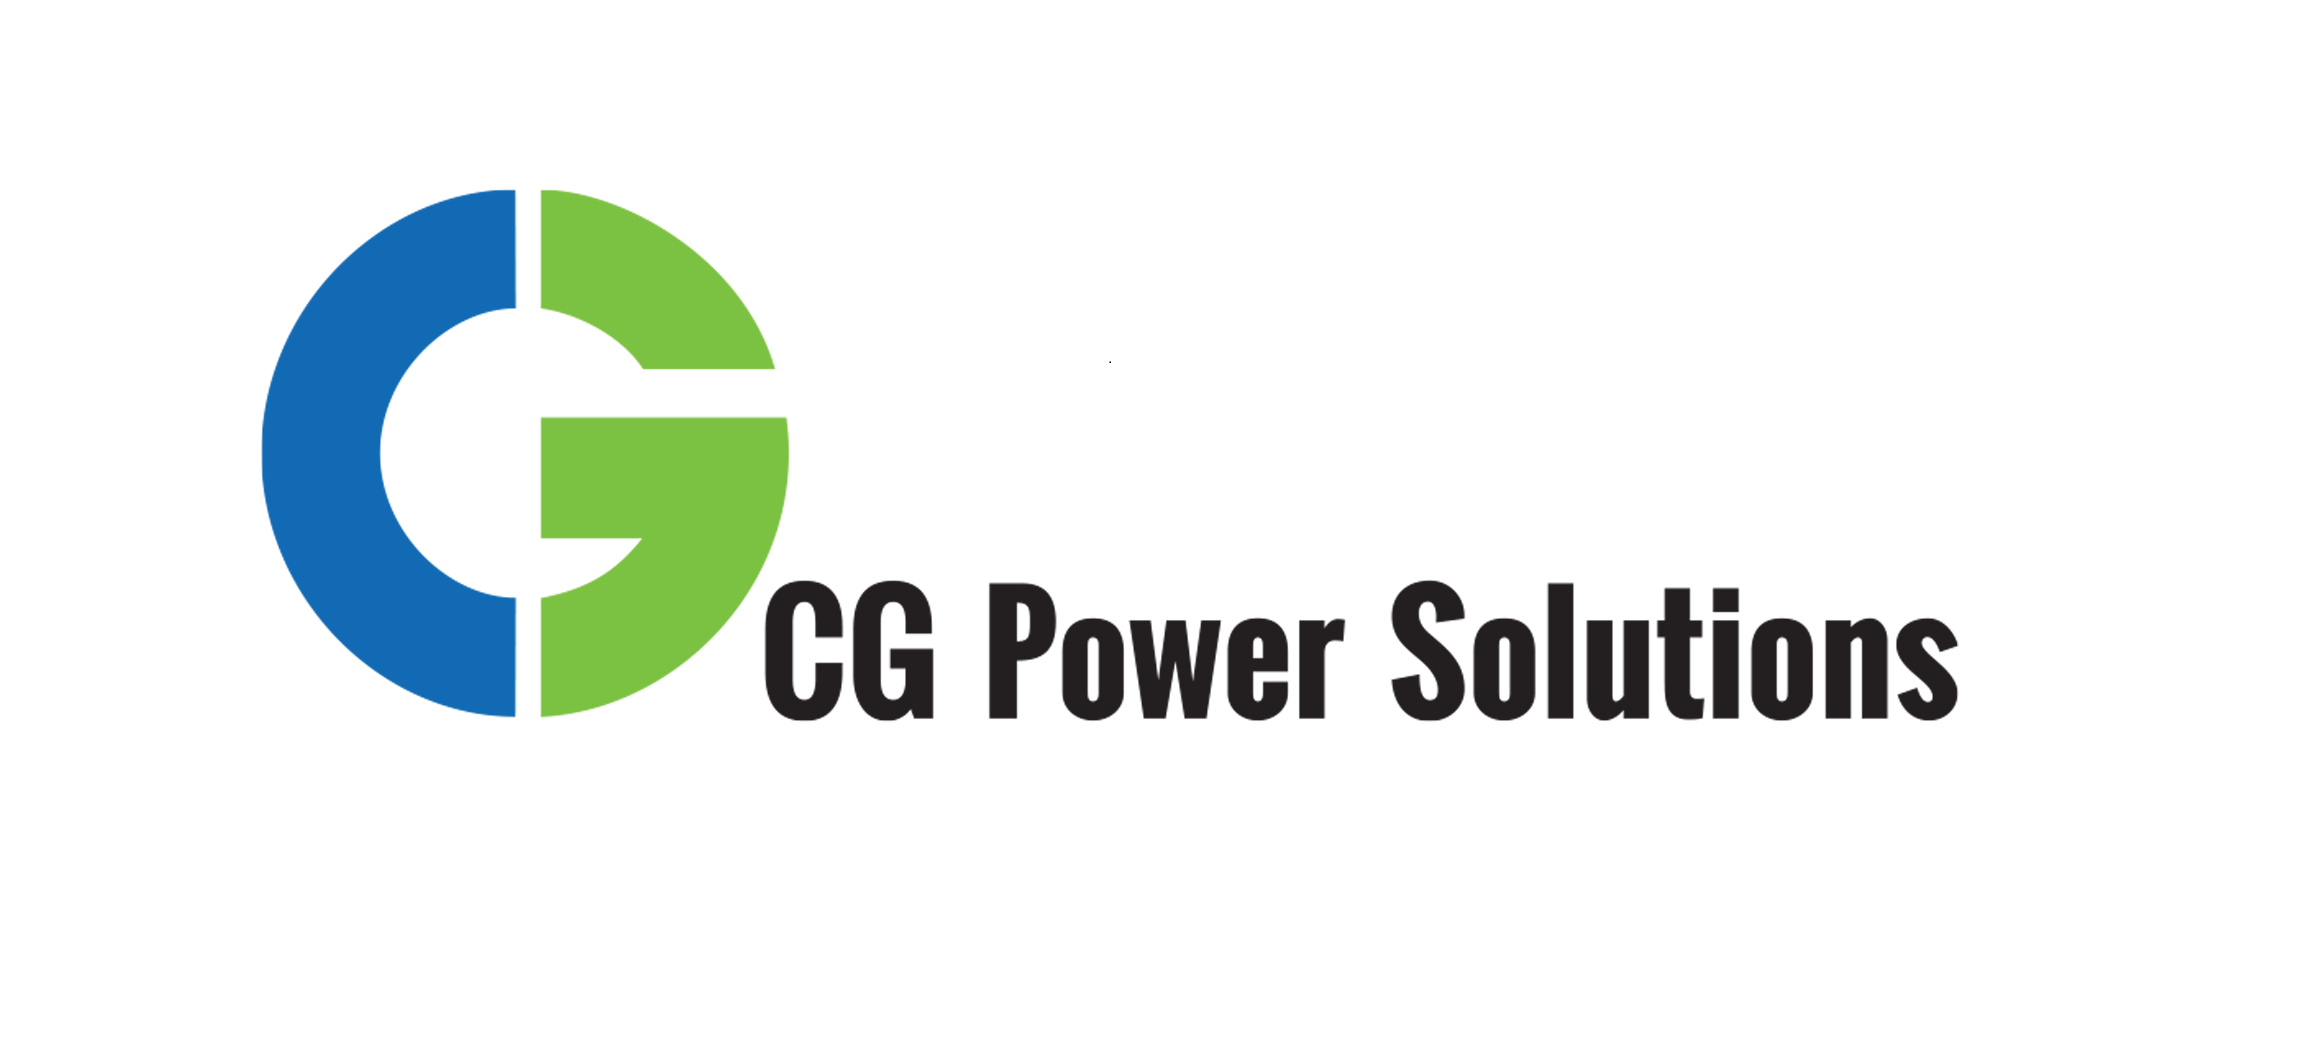 CG Power & Industrial Solutions | Market capitalisation in December 2017: Rs 5,819.34 crore | Current market capitalisation: Rs 2,259.42 crore | Current stock price: Rs 36.05 | YTD return: -61.17% (Image: CG Power & Industrial Solutions)